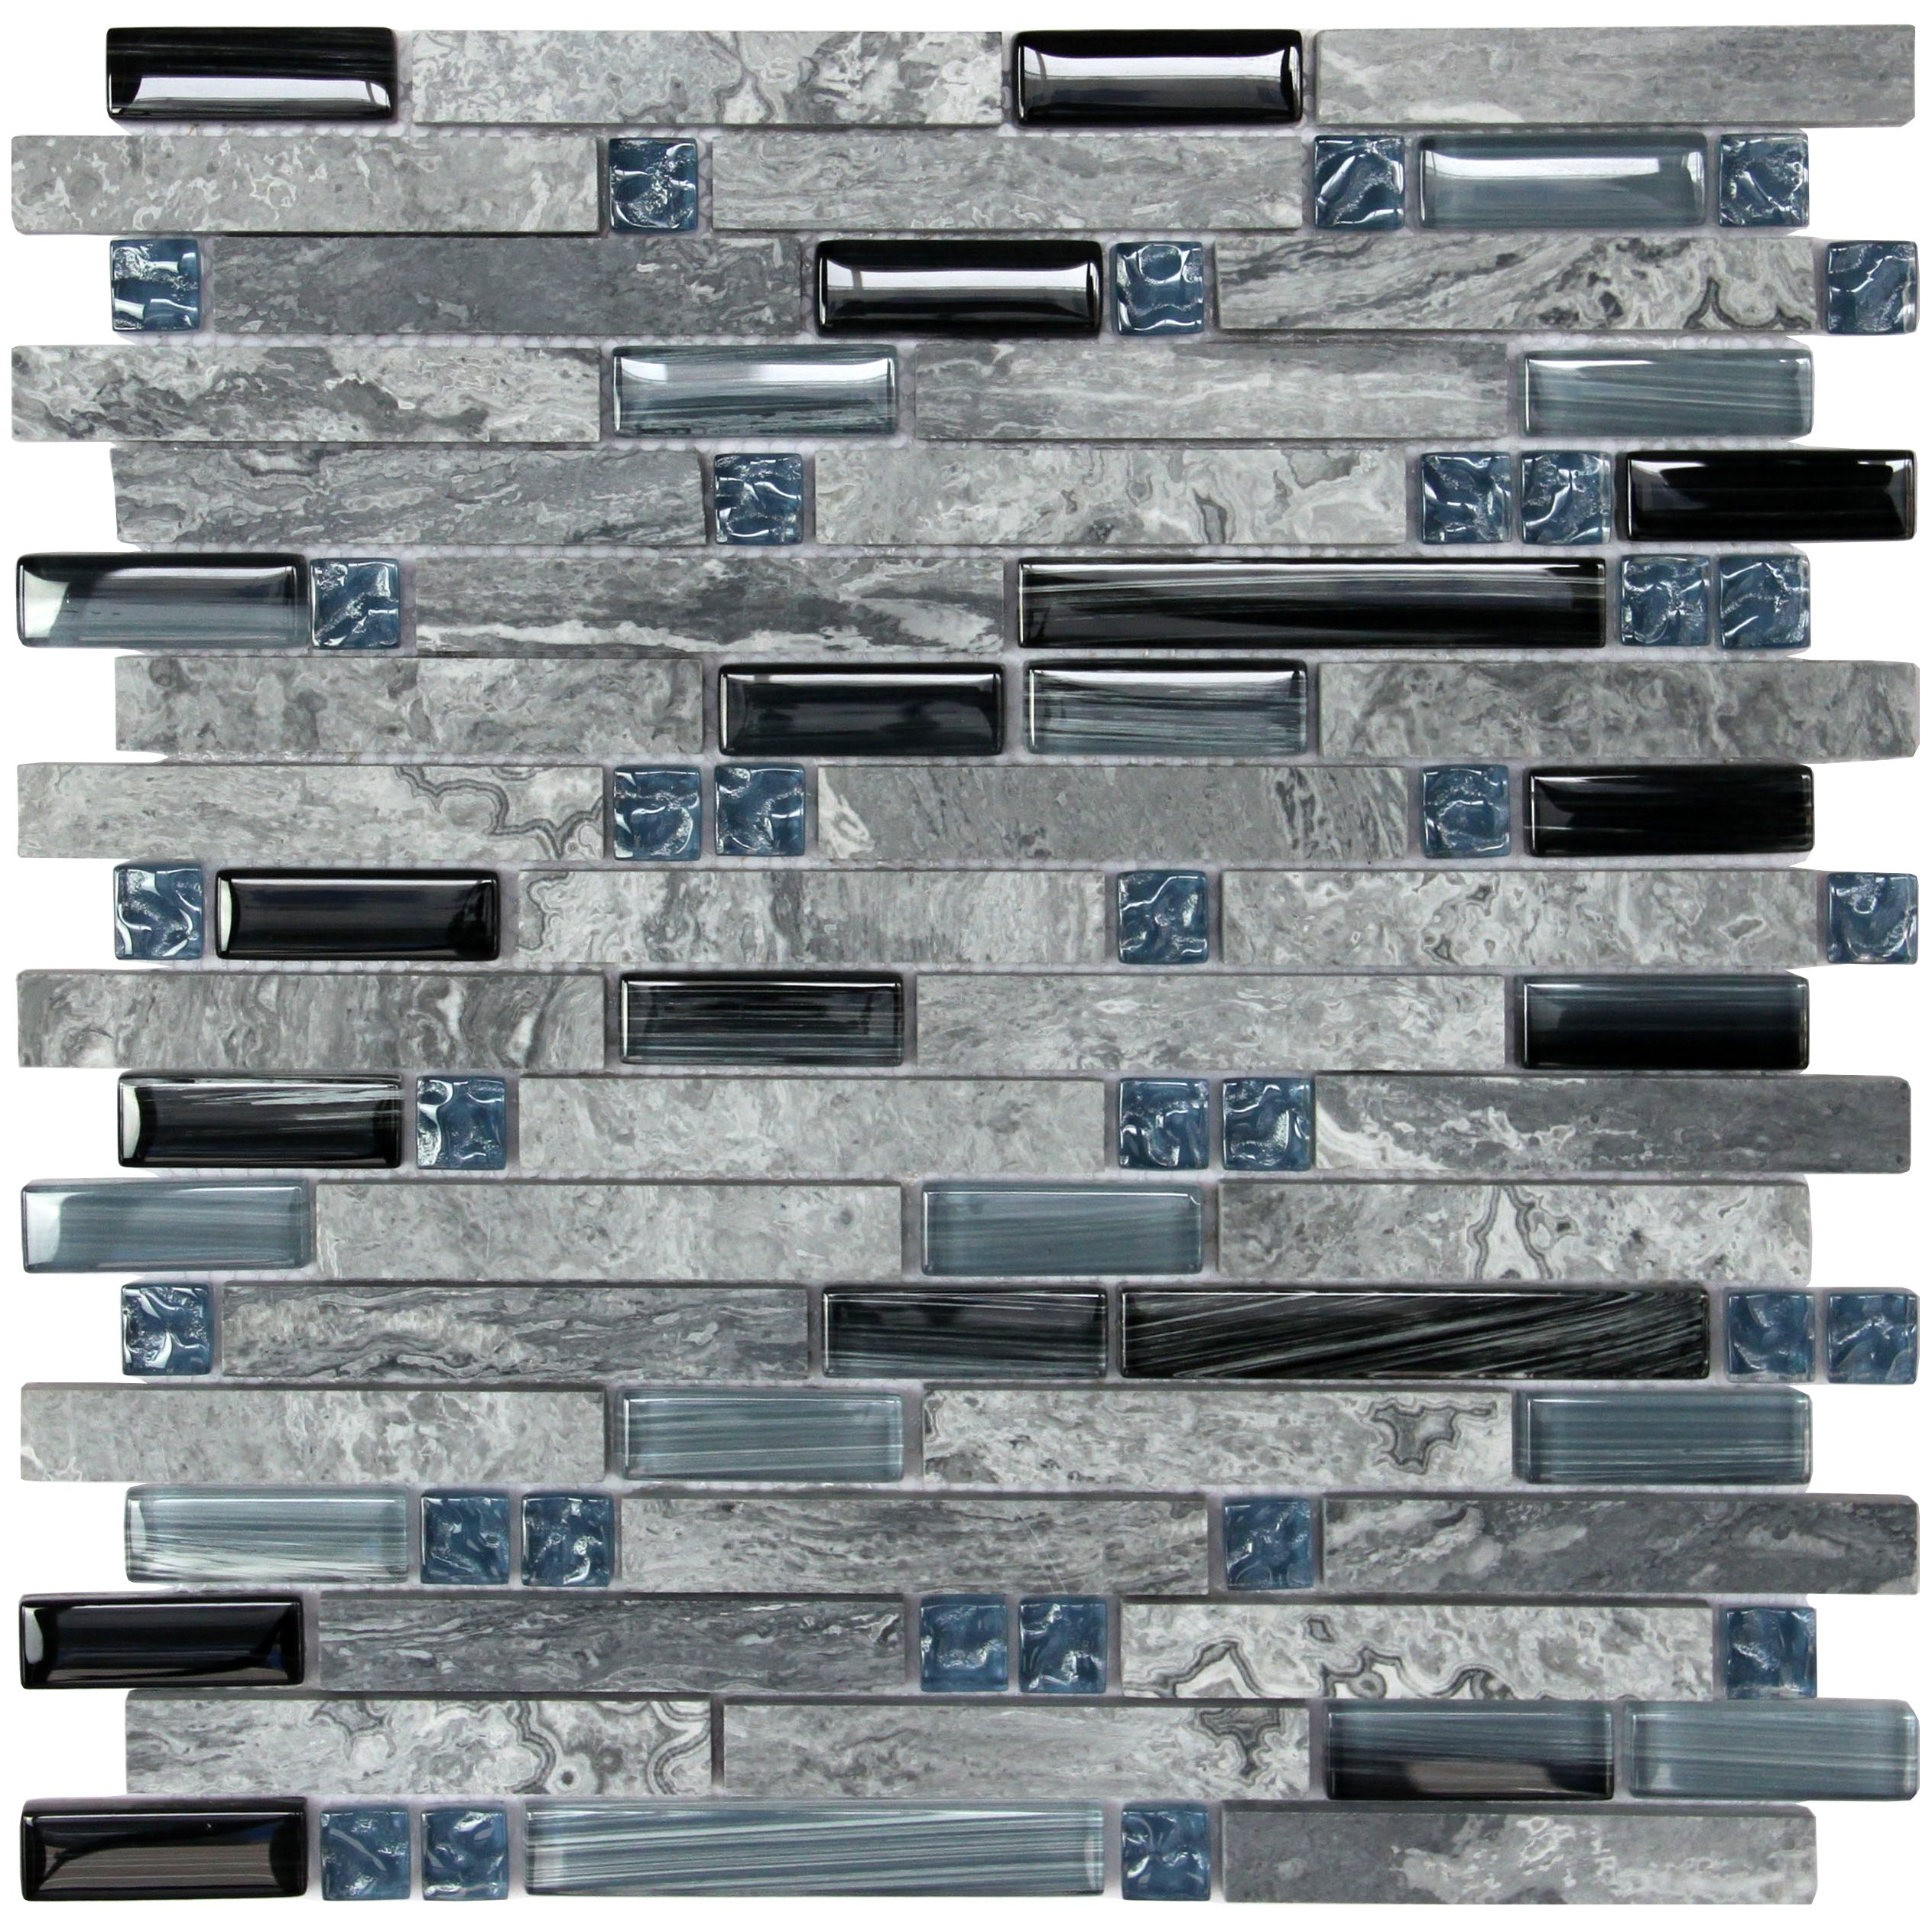 Soapstone Blues (GD09) Gray Marble Stone Blue Black Glass Blend Backsplash Tiles for Kitchen Bathroom Mosaic Wall (1 Box / 11 Sheets) by LADA Mosaic Tiles